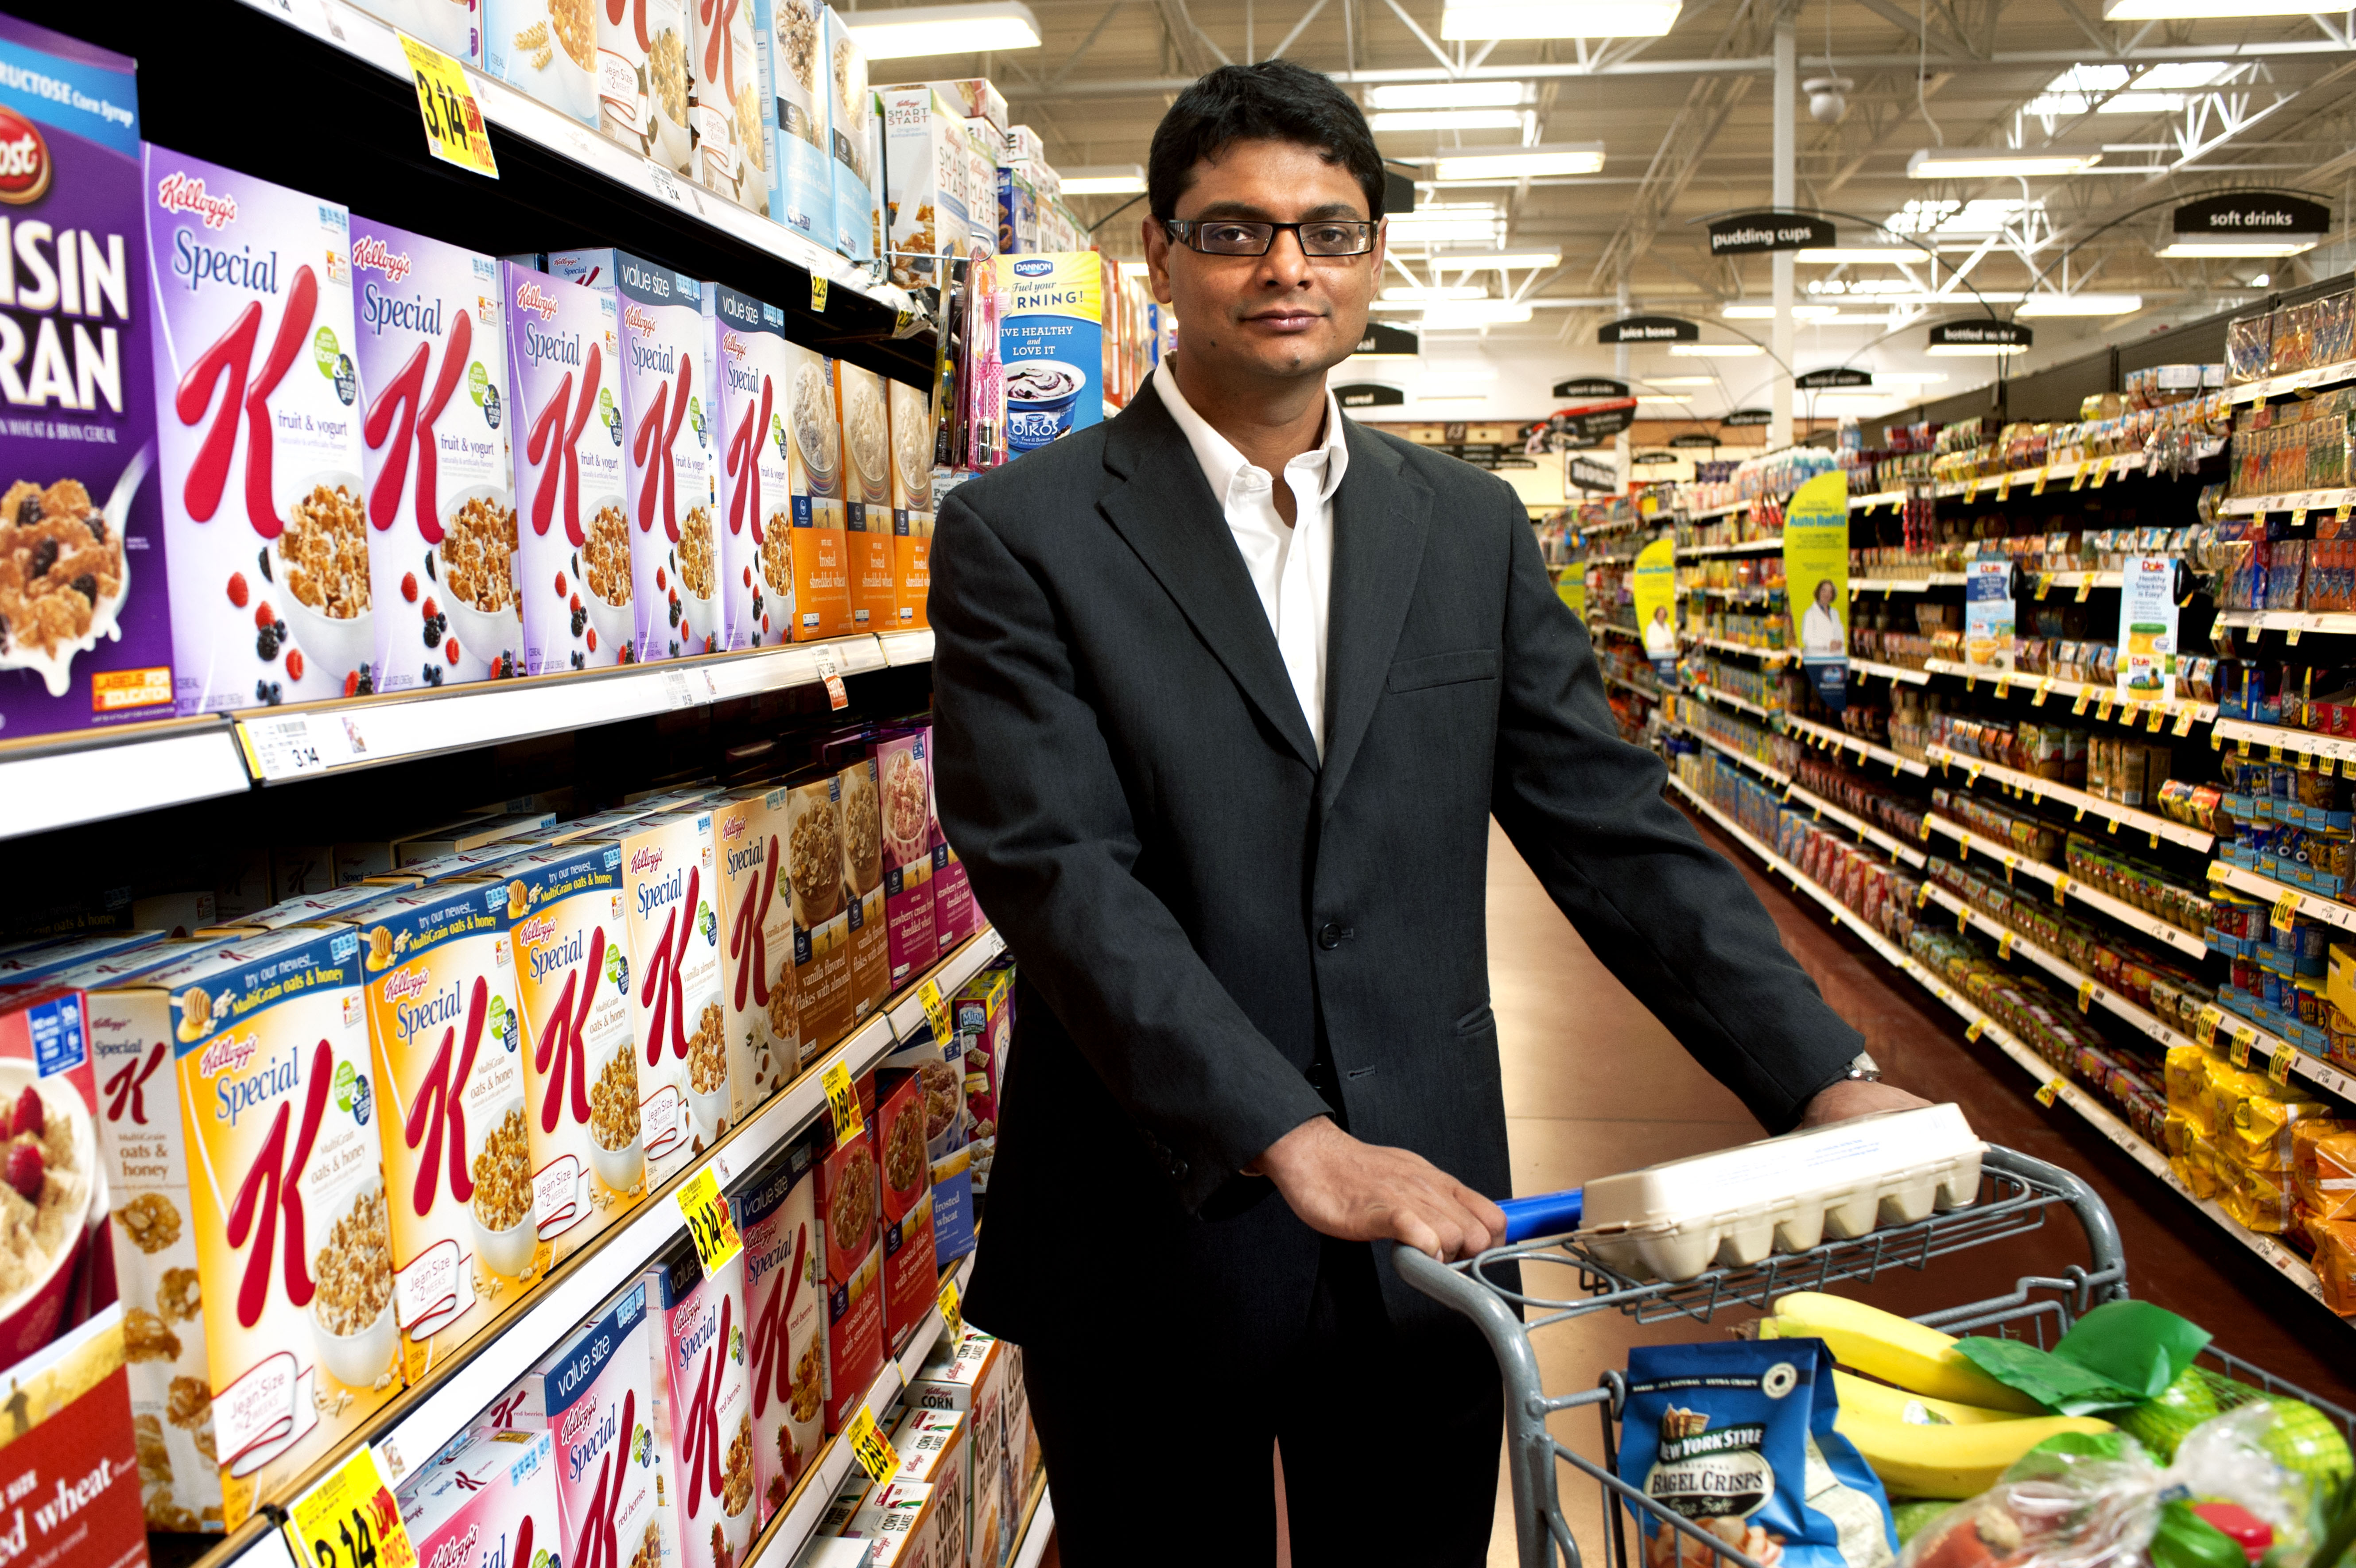 Marketing associate professor and consumer behavior researcher Rajesh Bagchi stands next to colorful boxes of cereal in a grocery store.